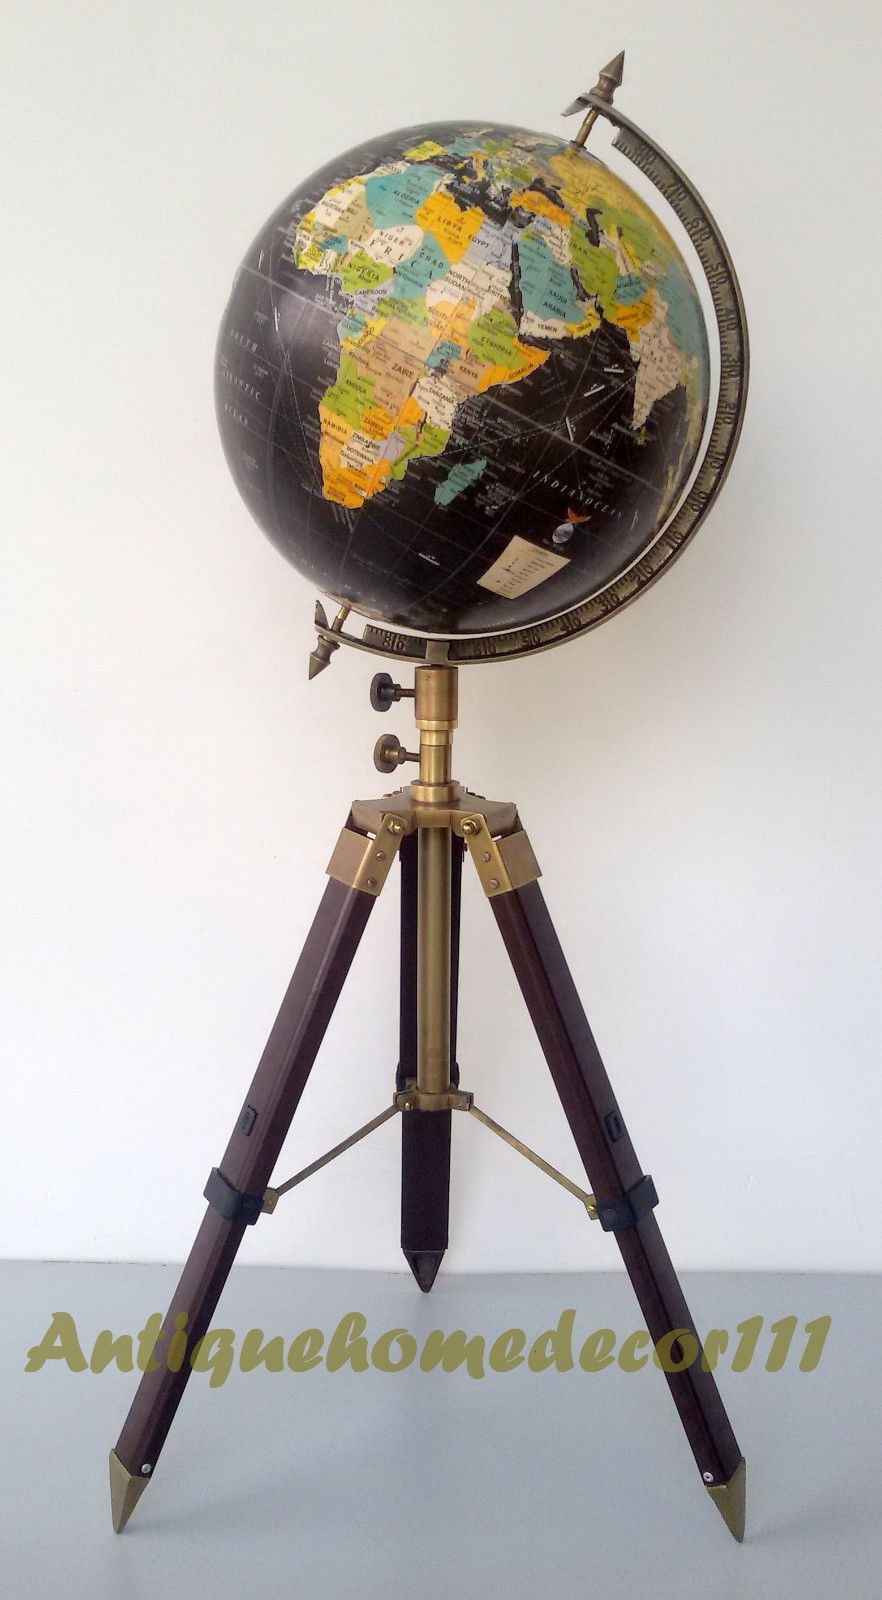 Vintage crams imperial world map globe 12 round w antique finish vintage crams imperial world map globe 12 round w antique finish tripod stand gumiabroncs Images